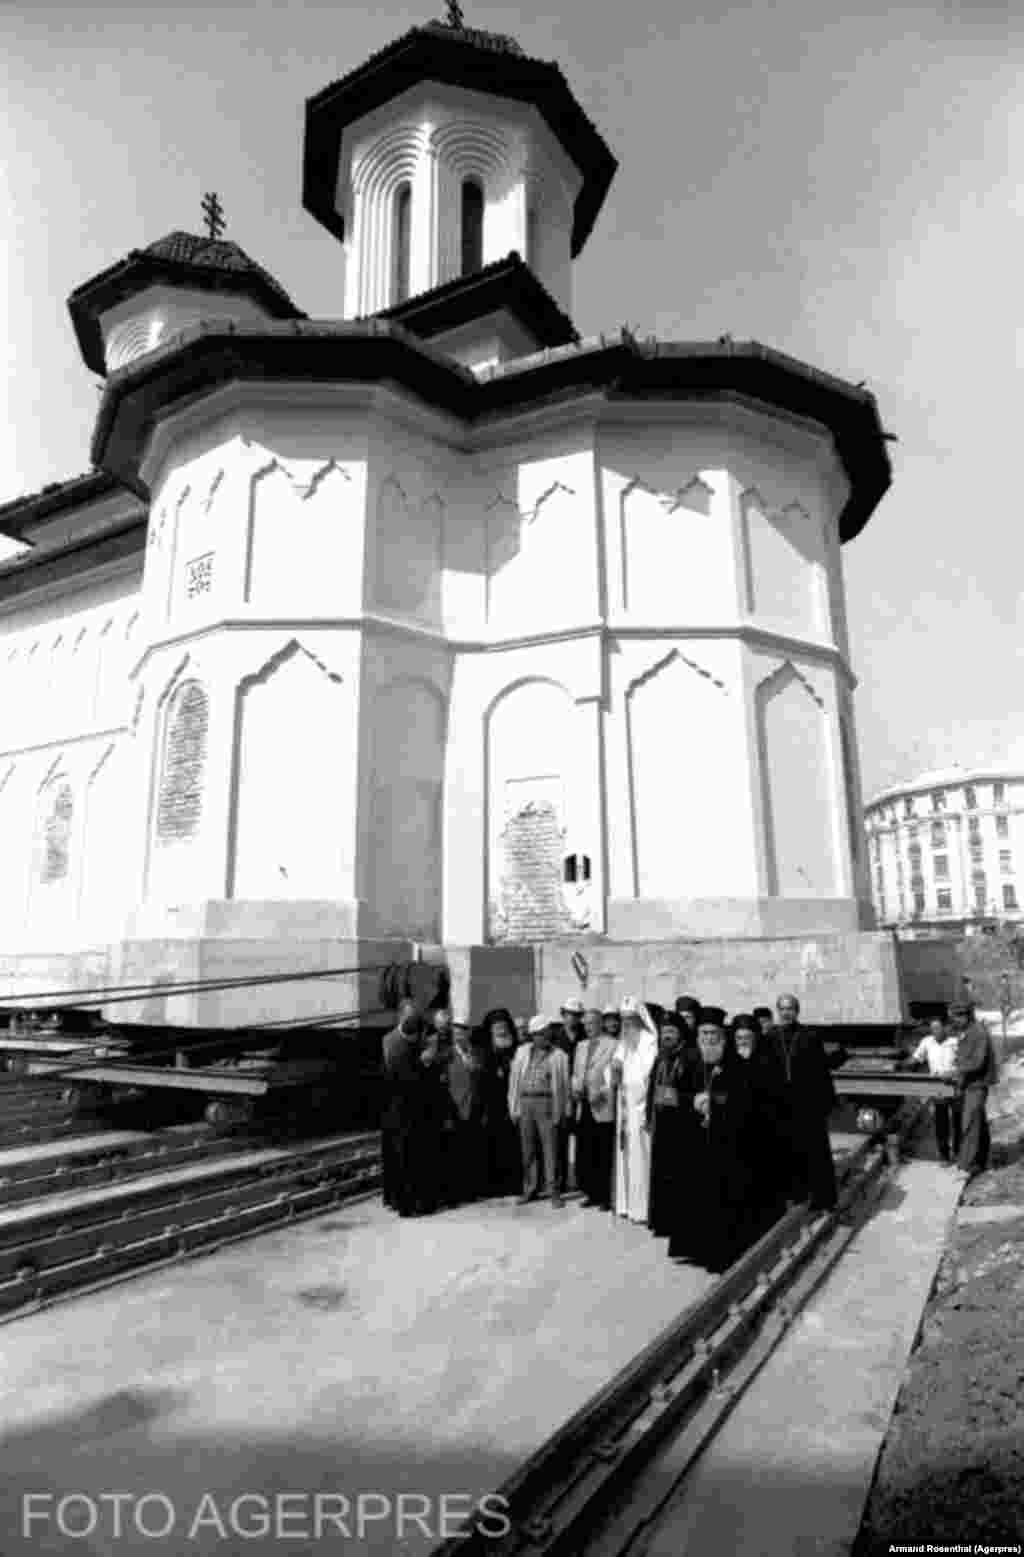 Olari Orthodox Church was saved in Bucharest, but 24 other churches were bulldozed by communist authorities in the Romanian capital.